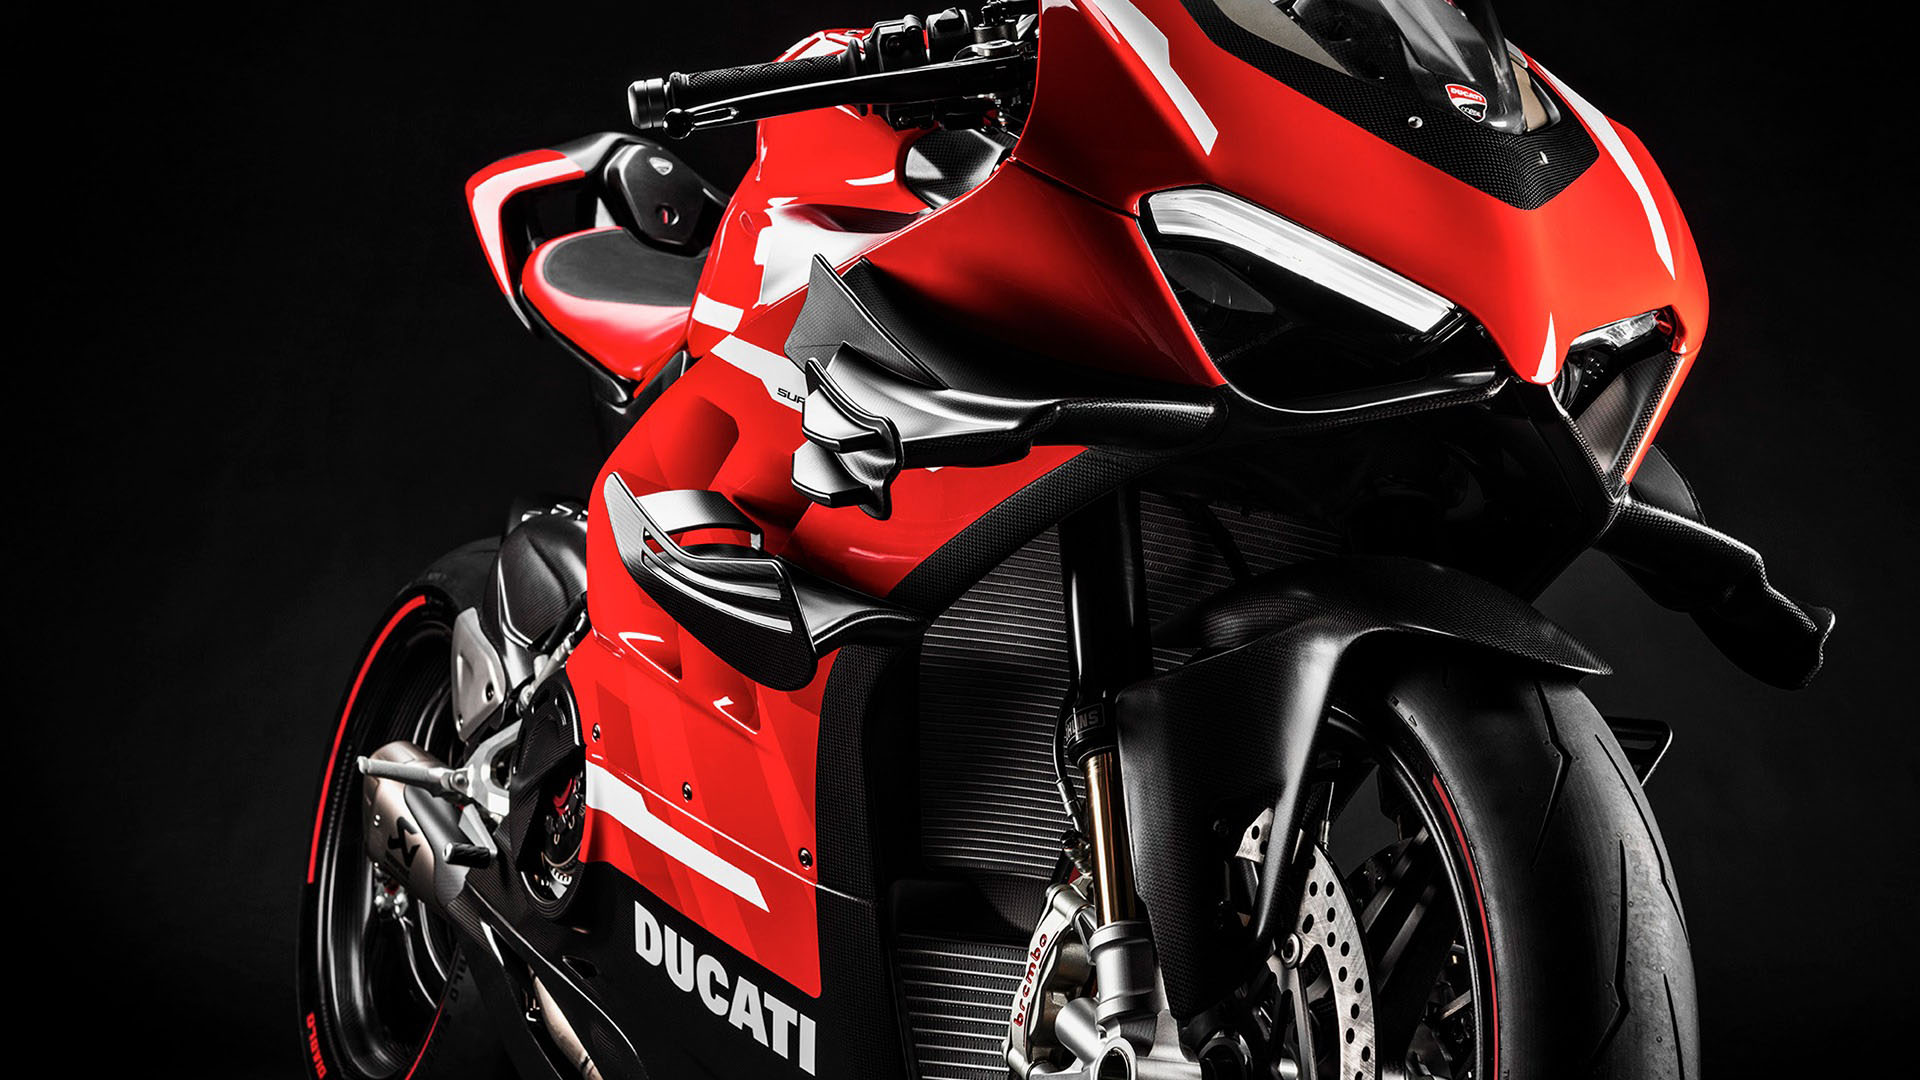 2021 Ducati Superleggera V4